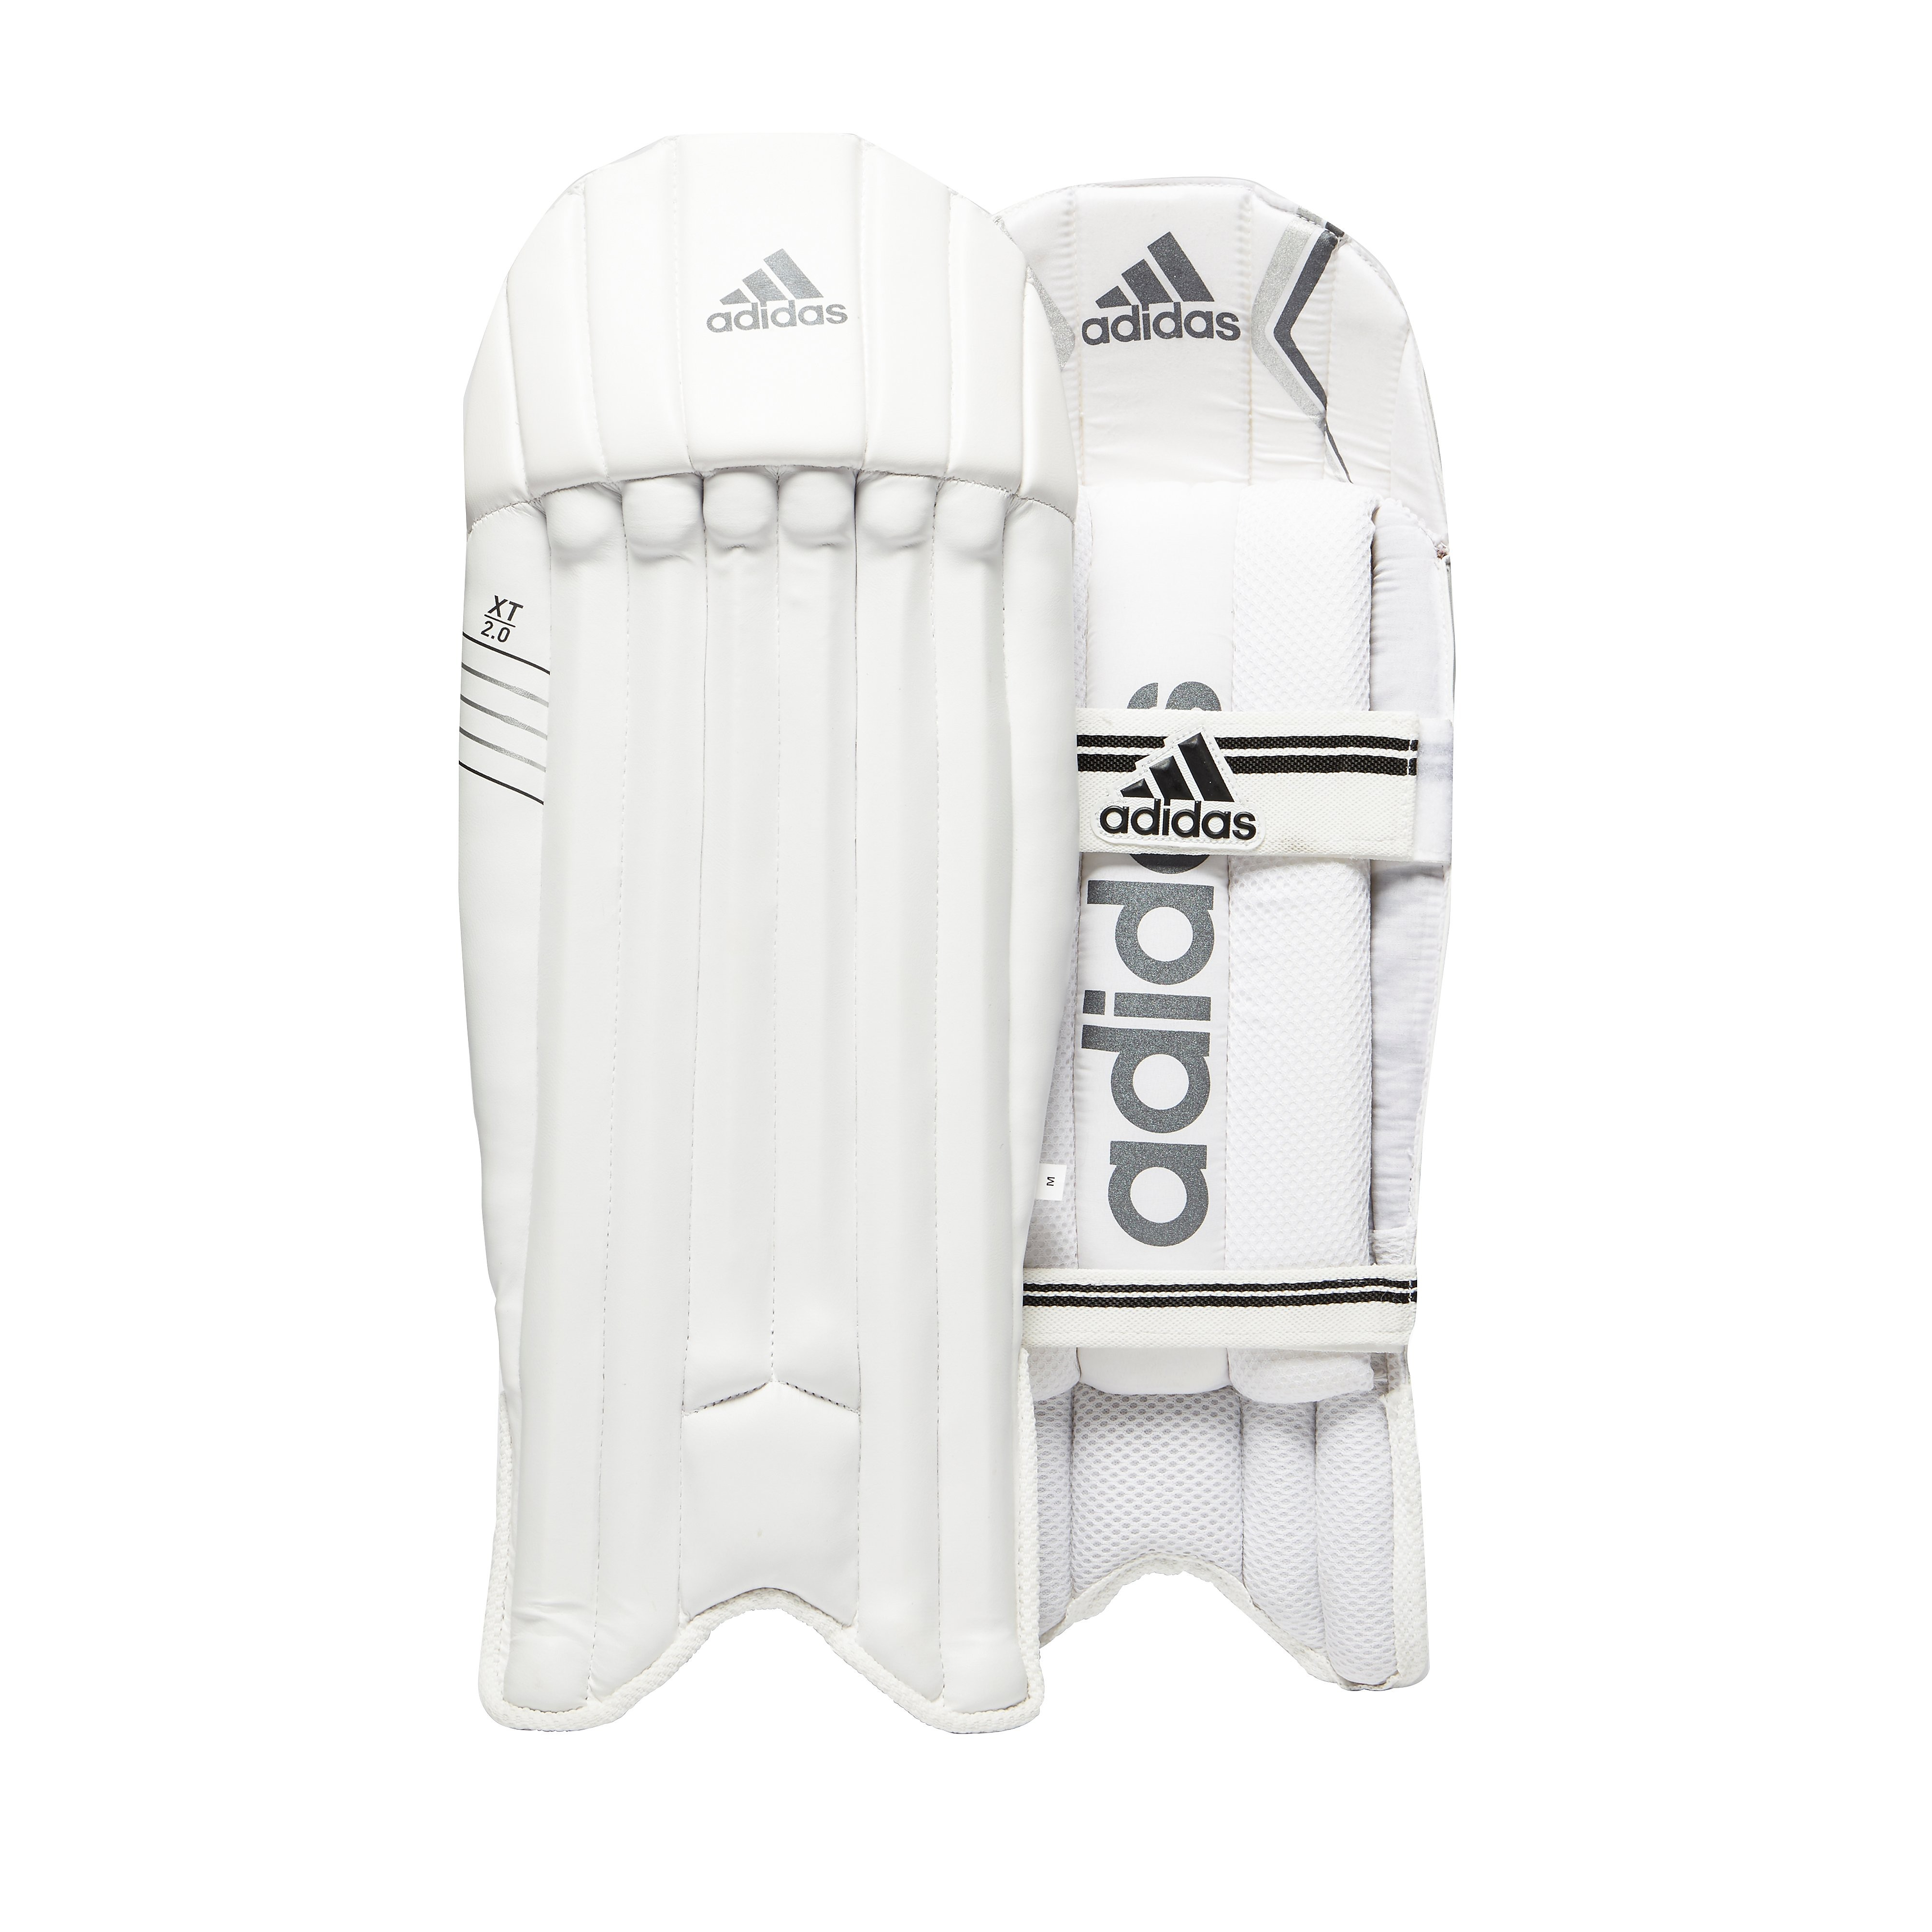 adidas XT 2.0 Wicket Keeping Pads